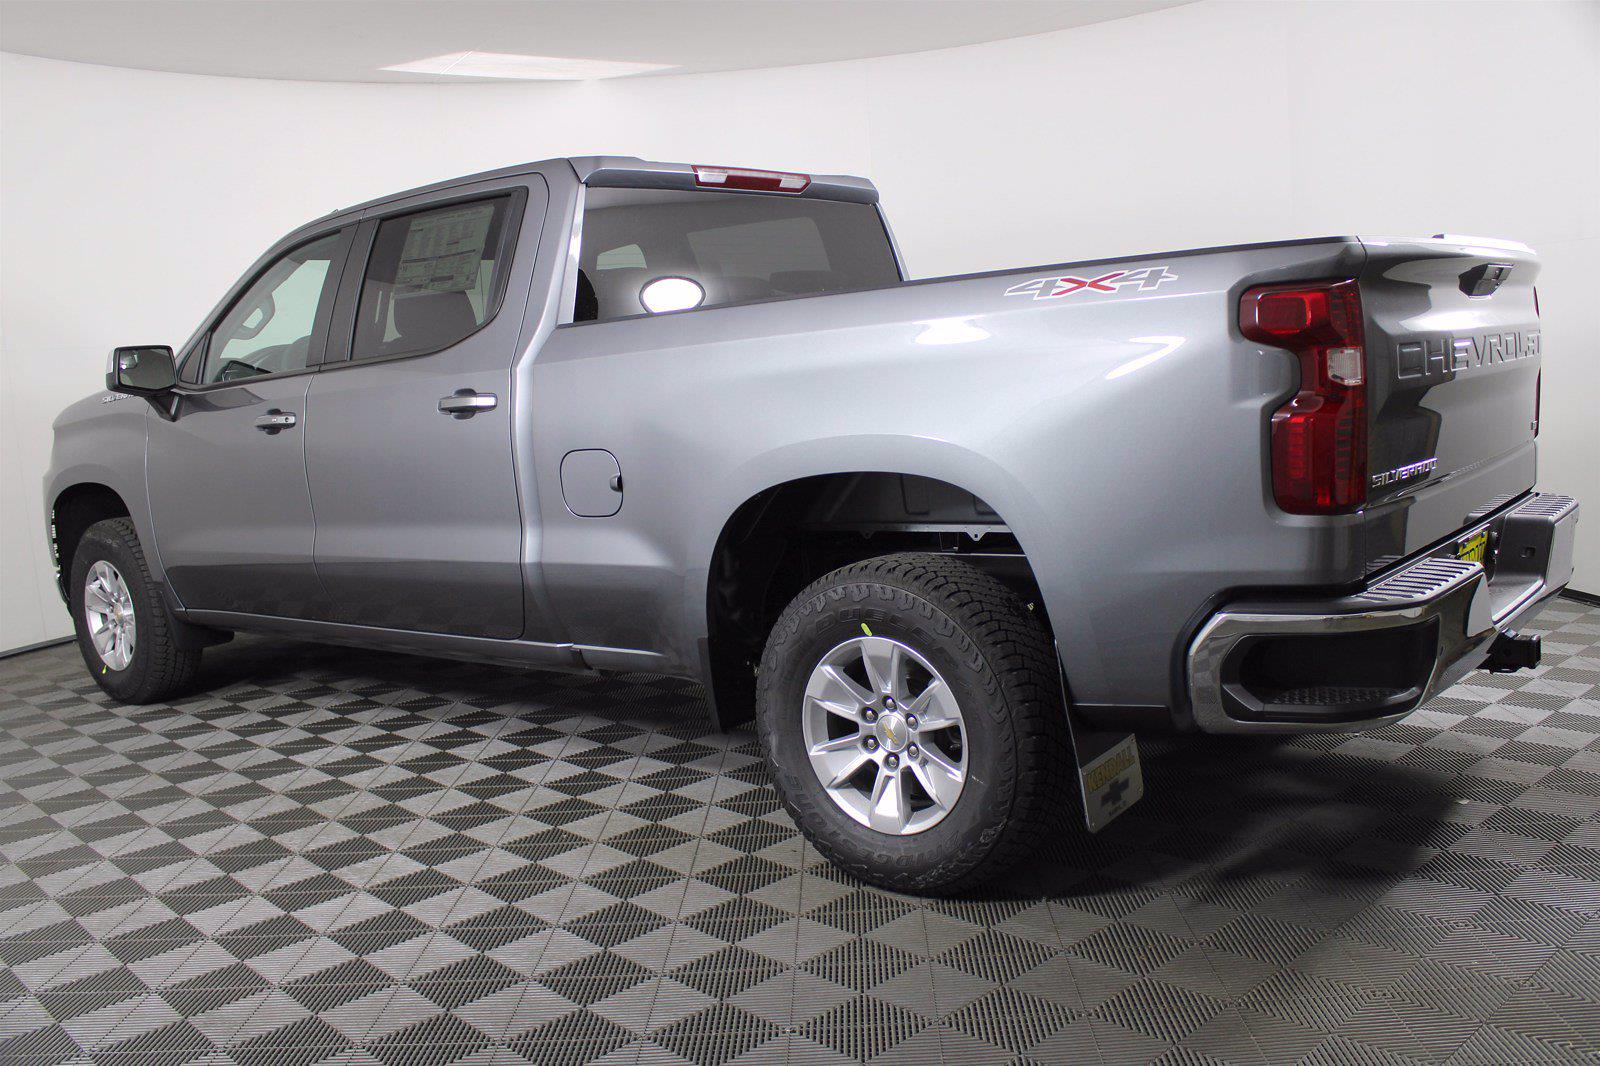 2021 Chevrolet Silverado 1500 Crew Cab 4x4, Pickup #D110908 - photo 2